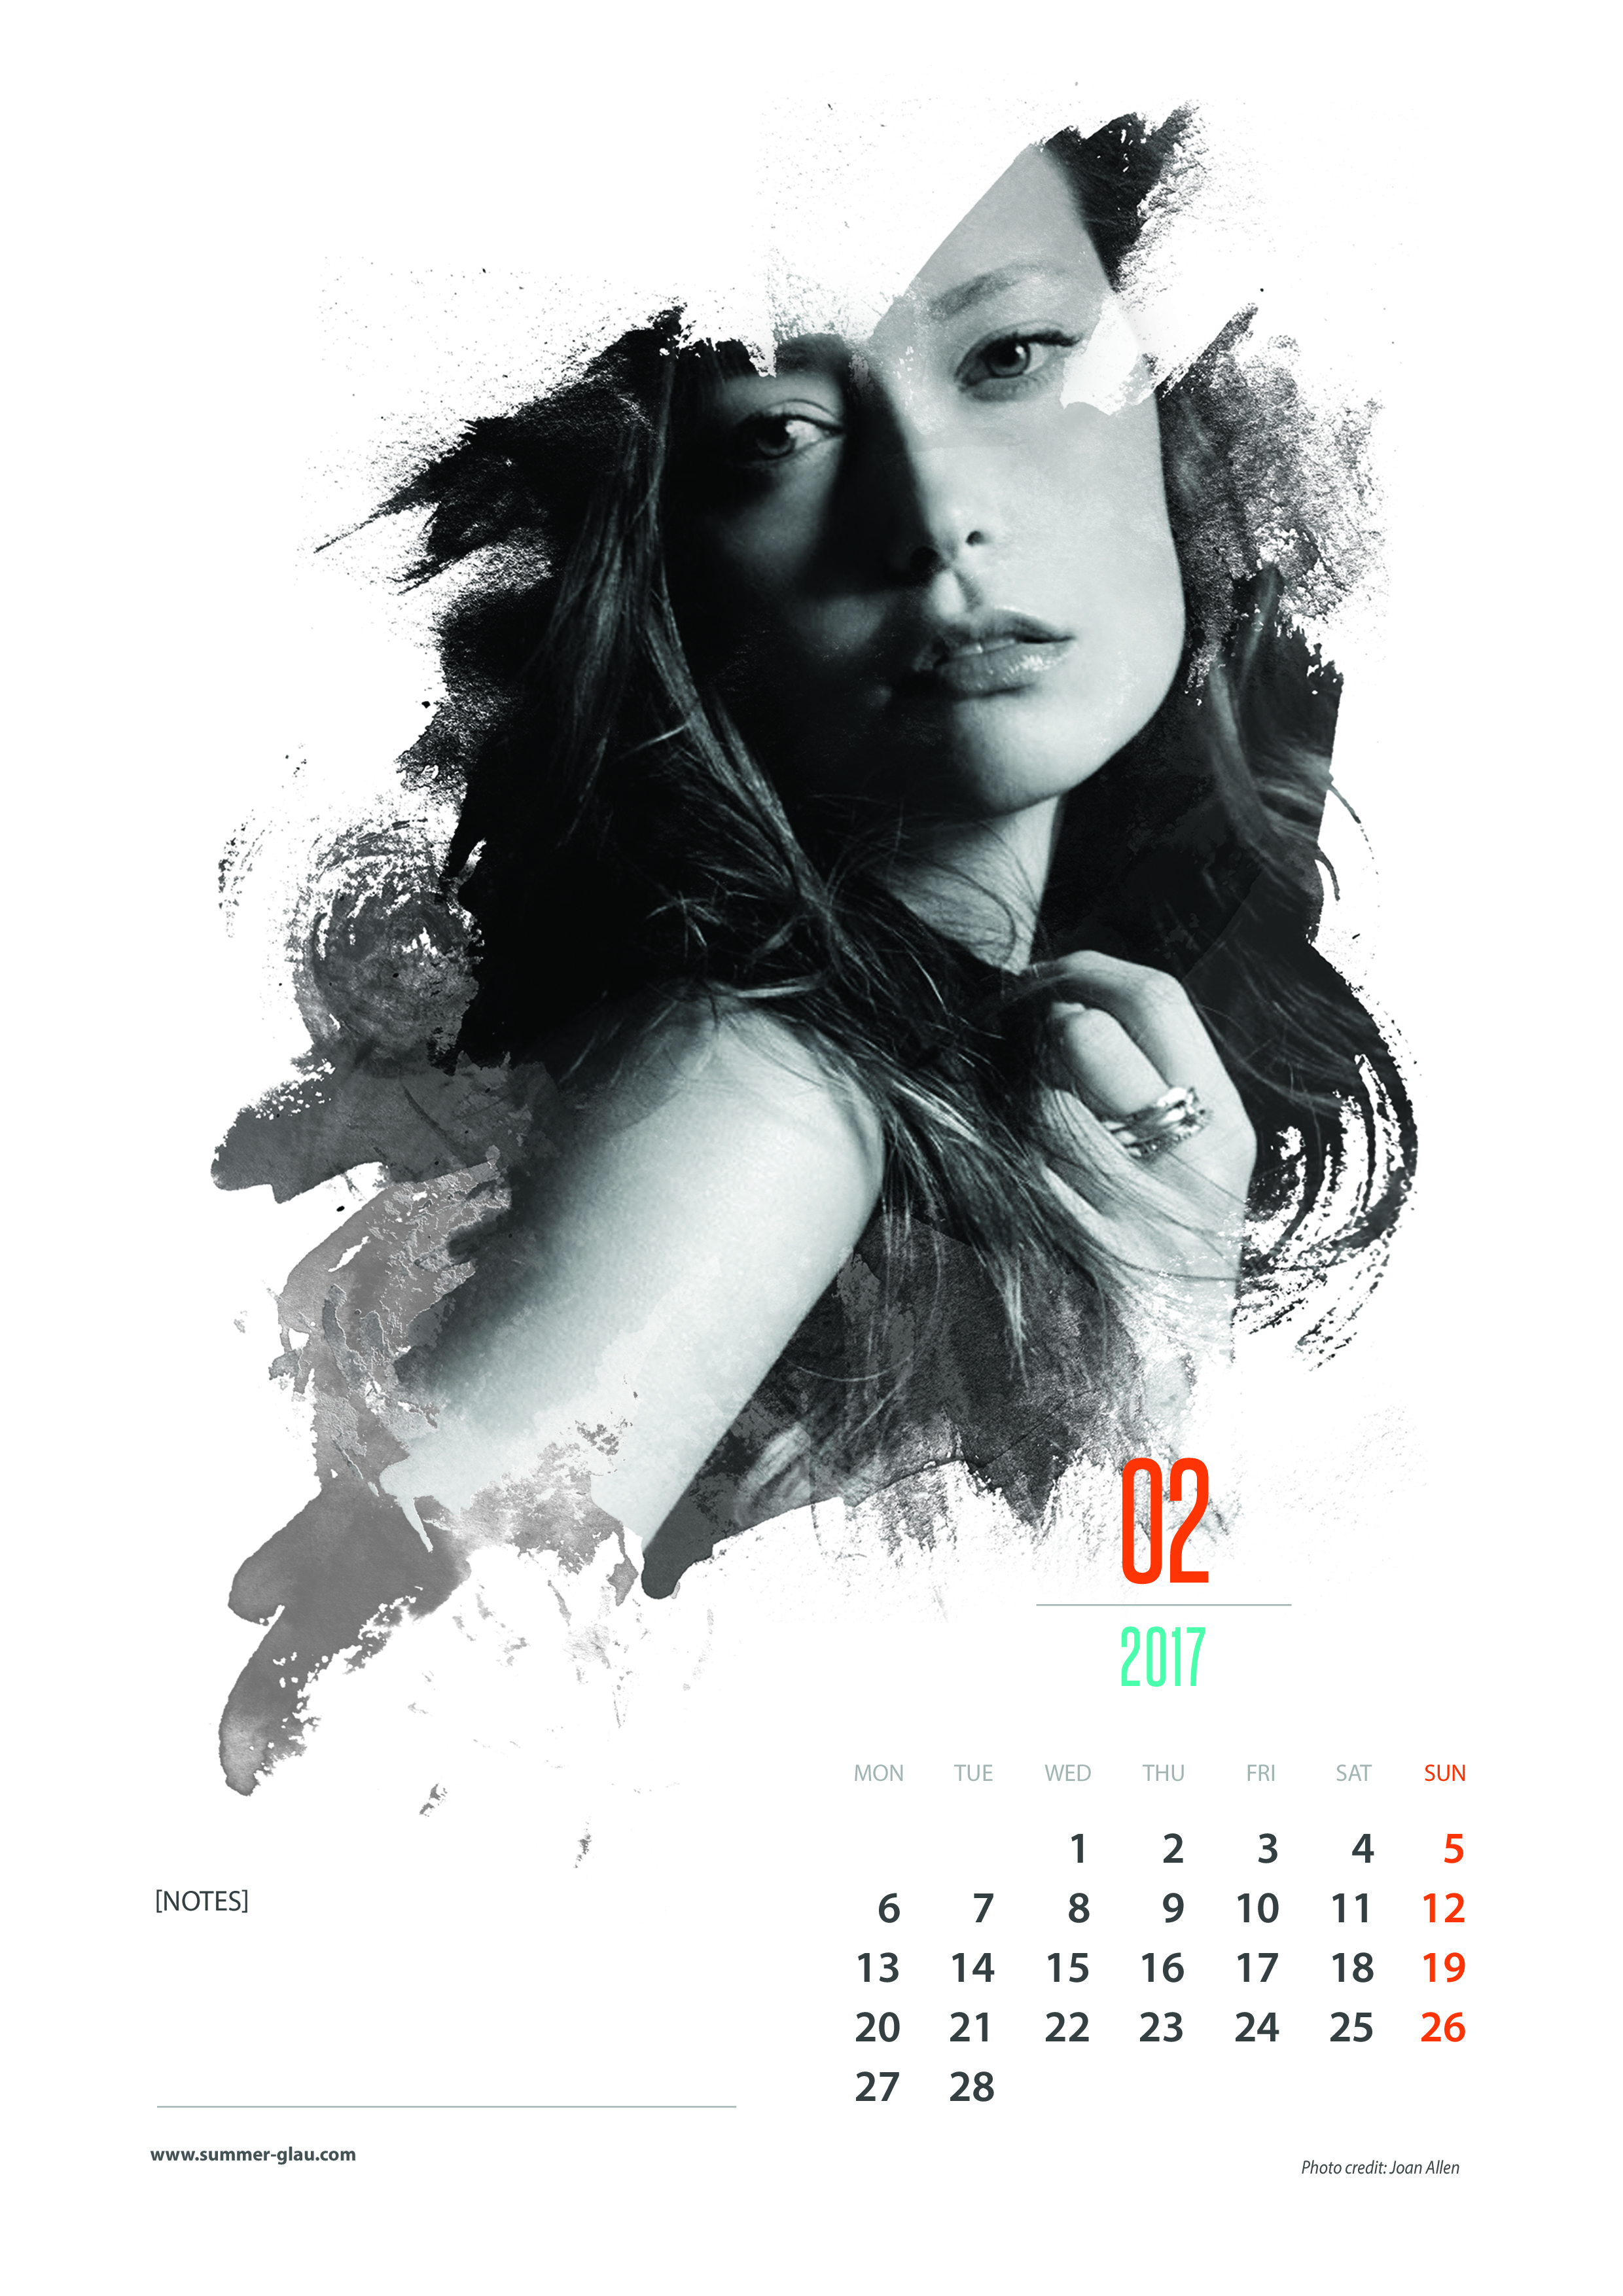 Monthly Calendar Print Out : Summer glau calendar now available december